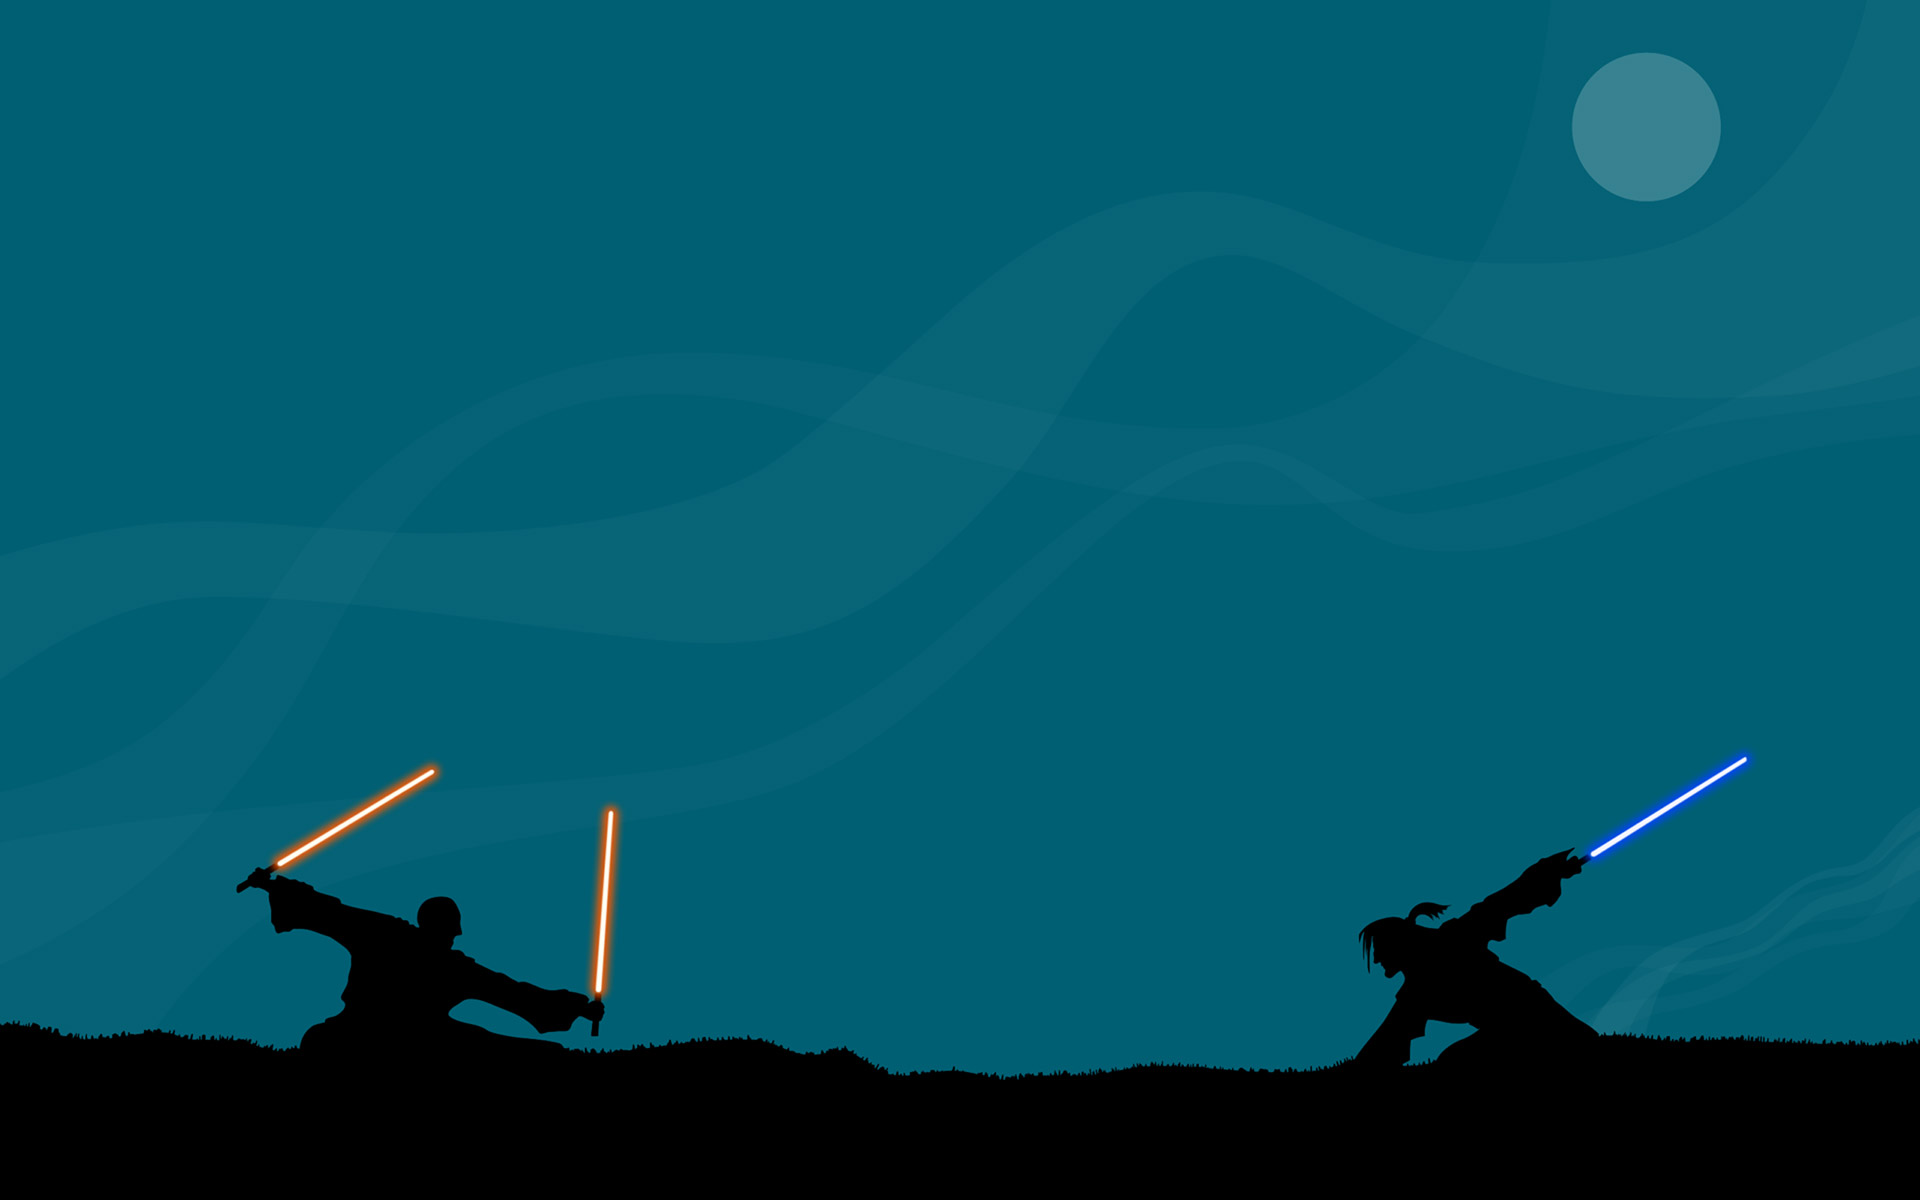 FizX Entertainment Huge Star Wars Wallpapers Collection 1920x1200